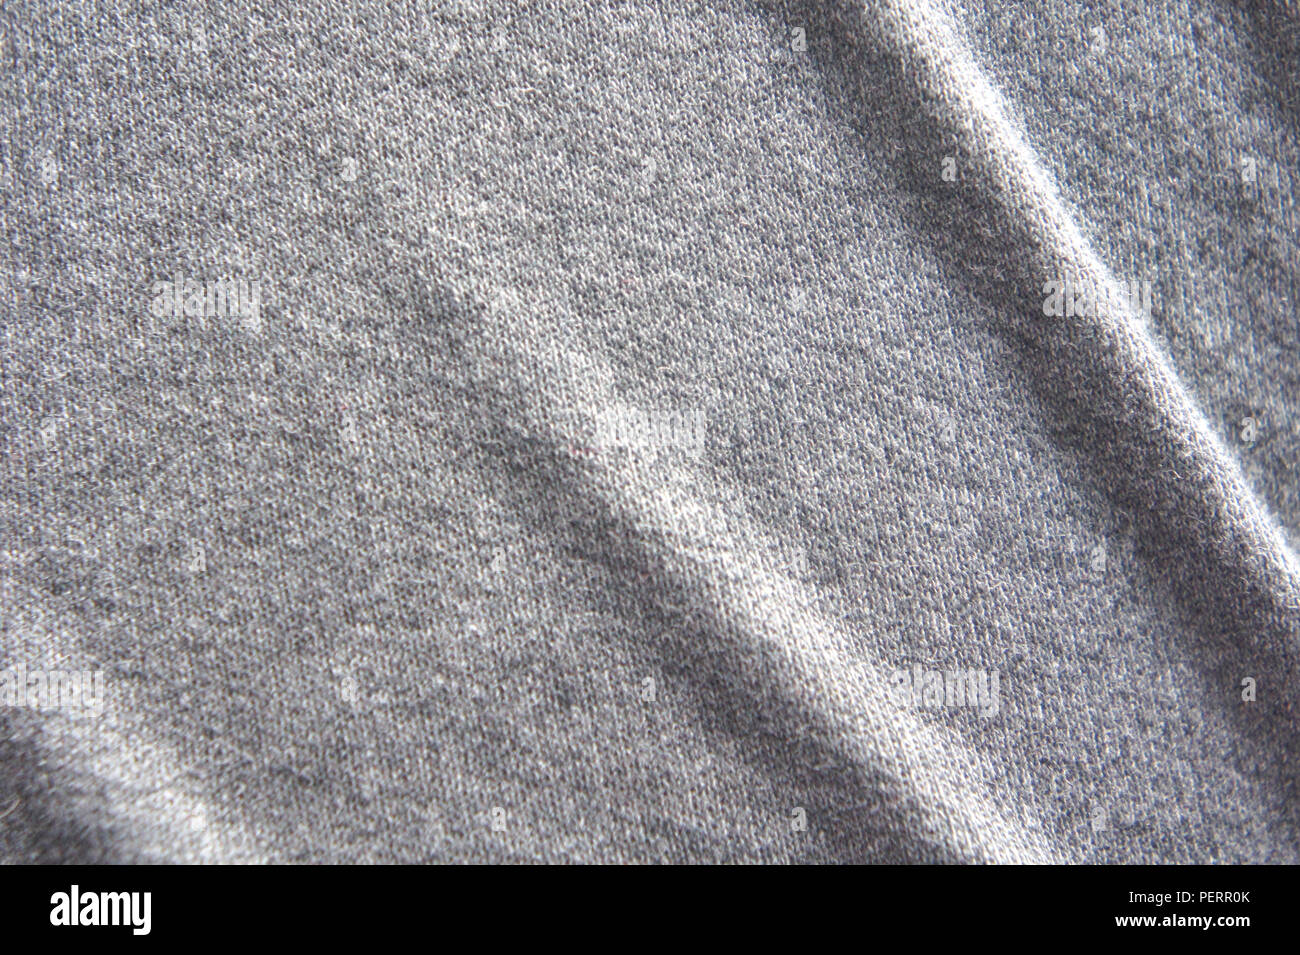 Crumpled fabric texture, cloth background, gray fabric texture background - Stock Image